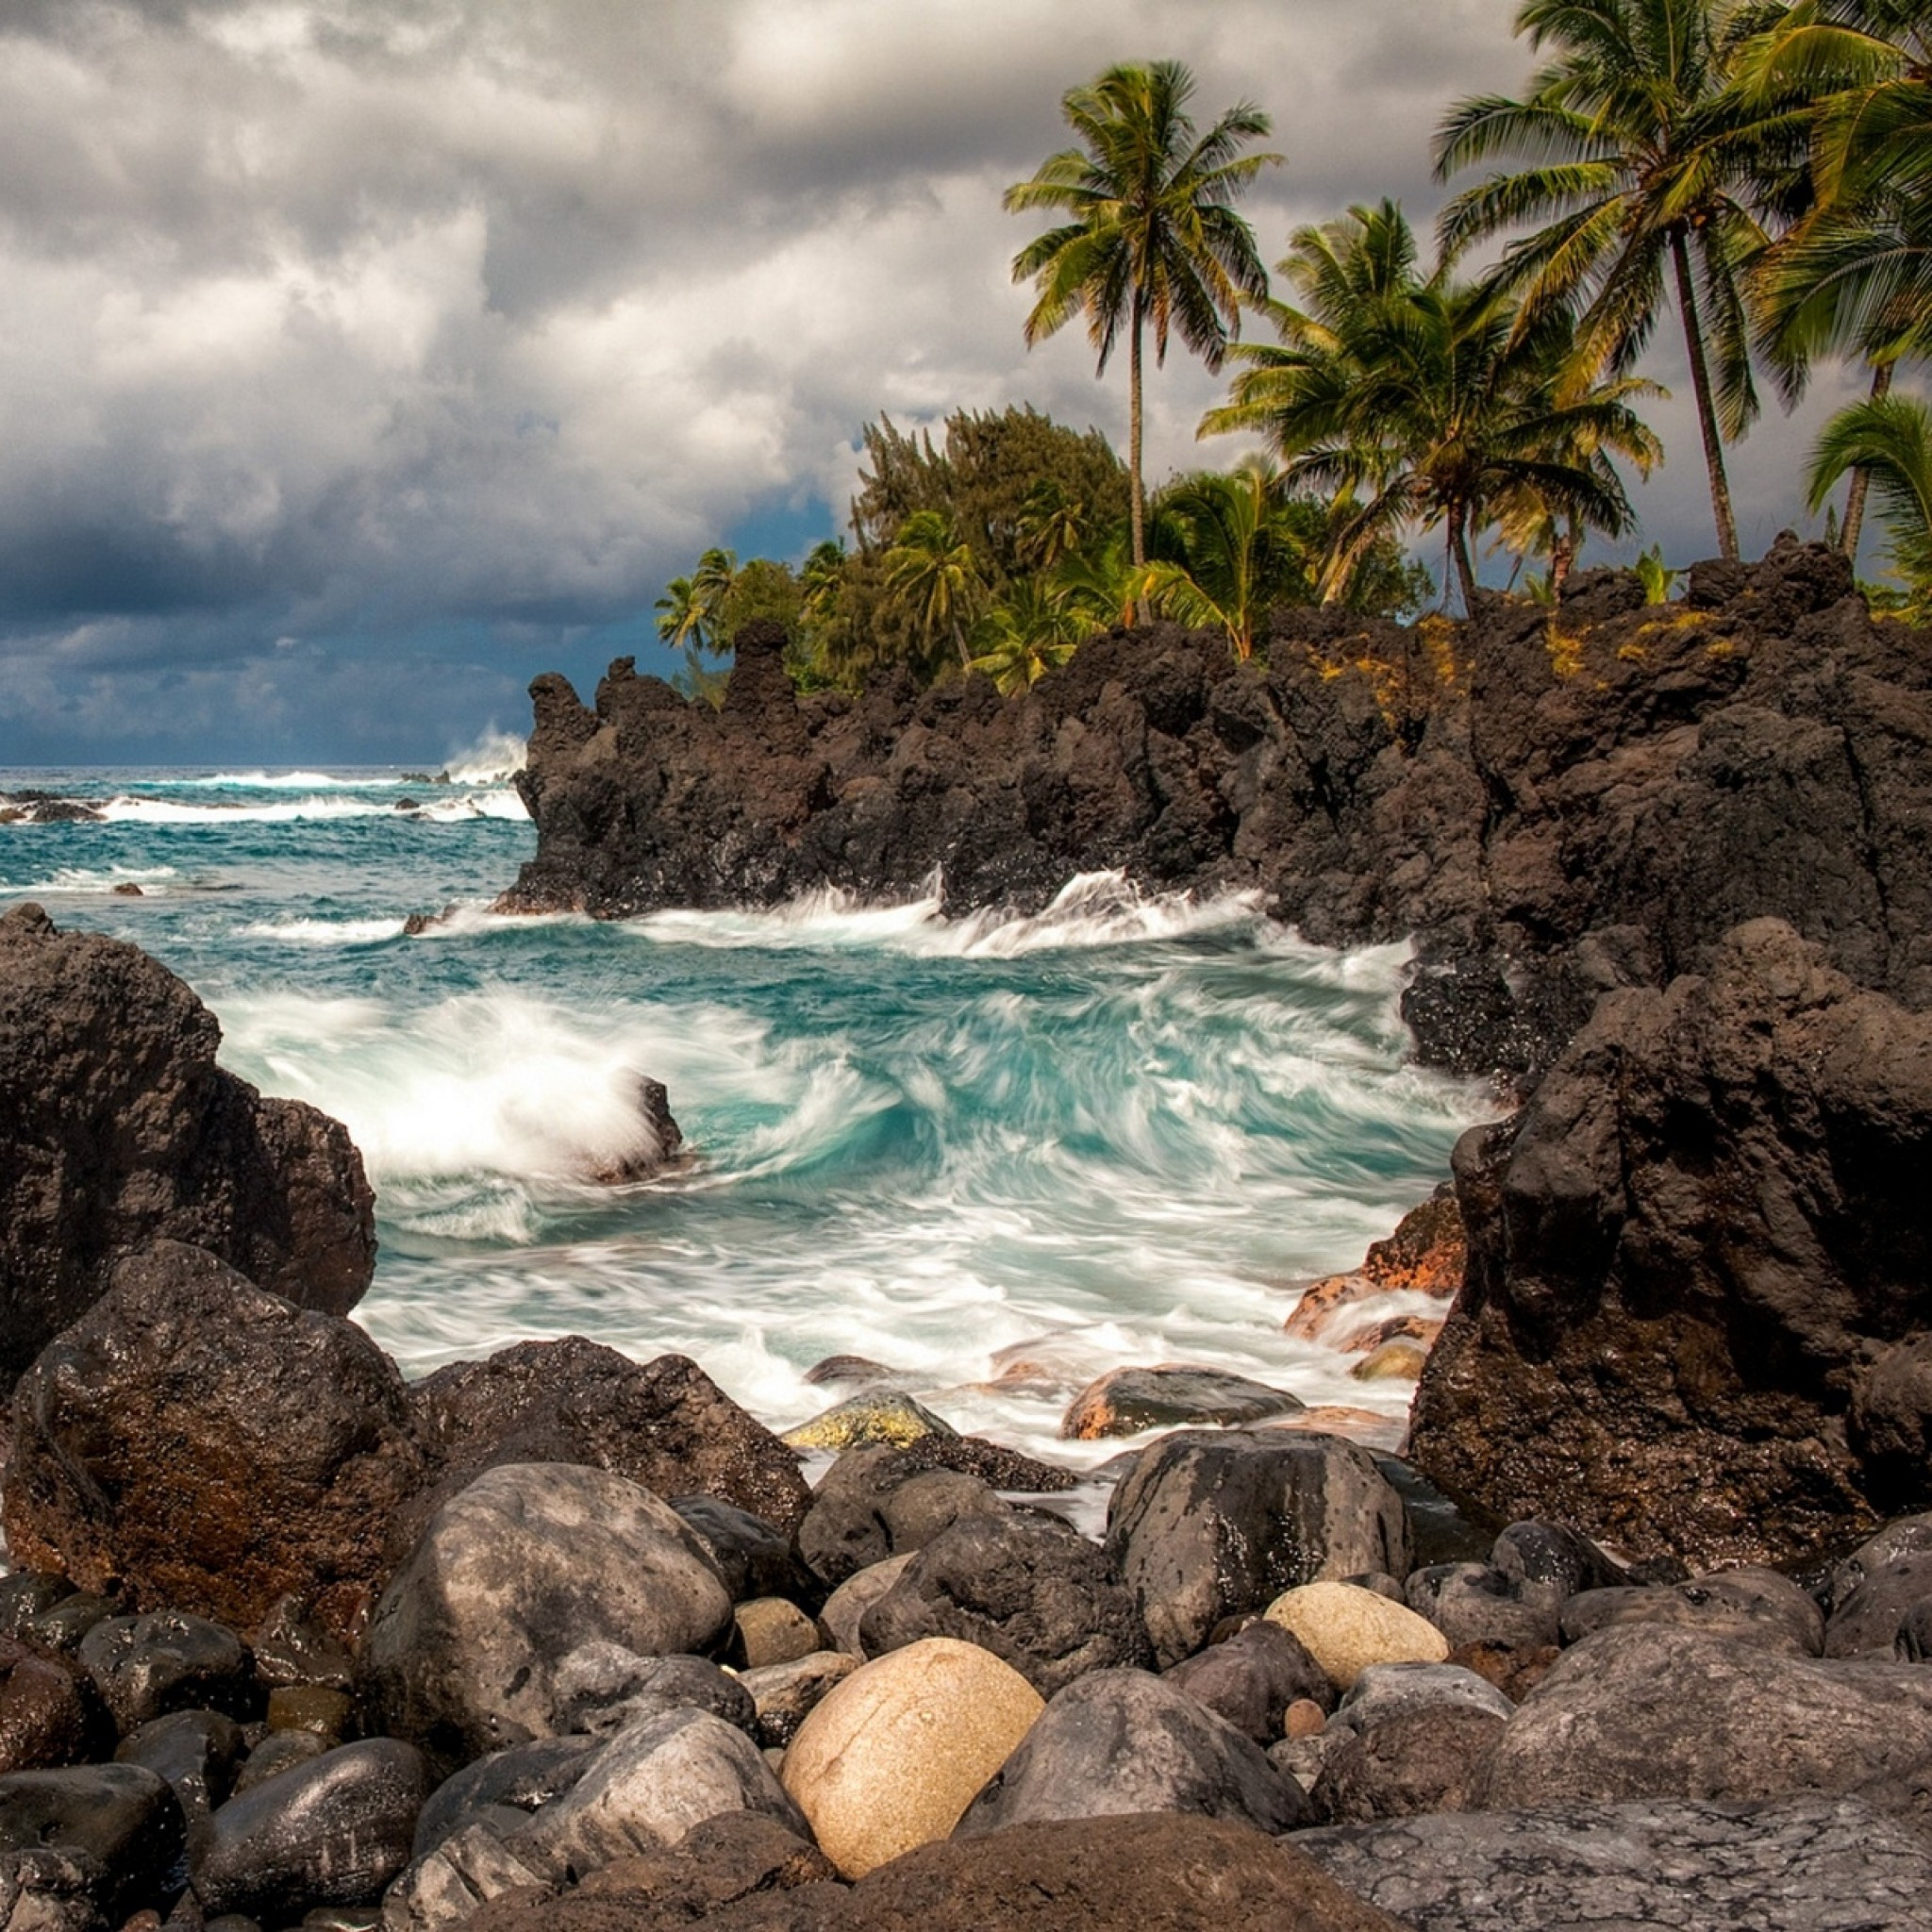 2048x2048 Preview wallpaper maui, hawaii, pacific ocean, cliffs, rocks, surf, palm